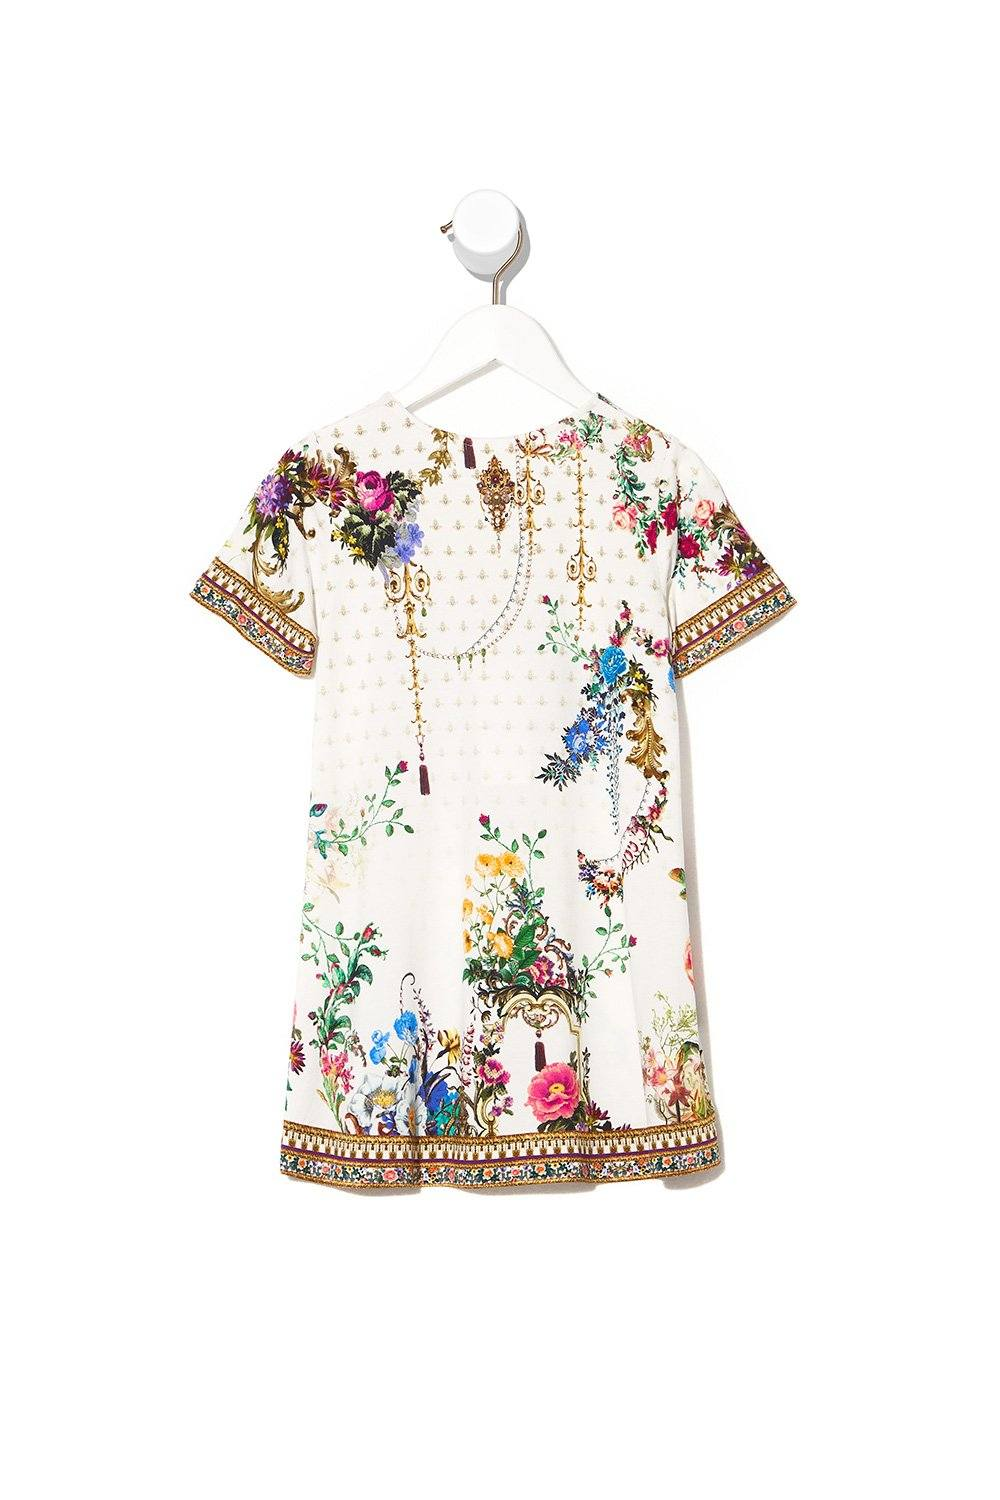 By the Meadow Kids T-Shirt Dress with Flare Hem 4-10 GIRLS CLOTHING CAMILLA